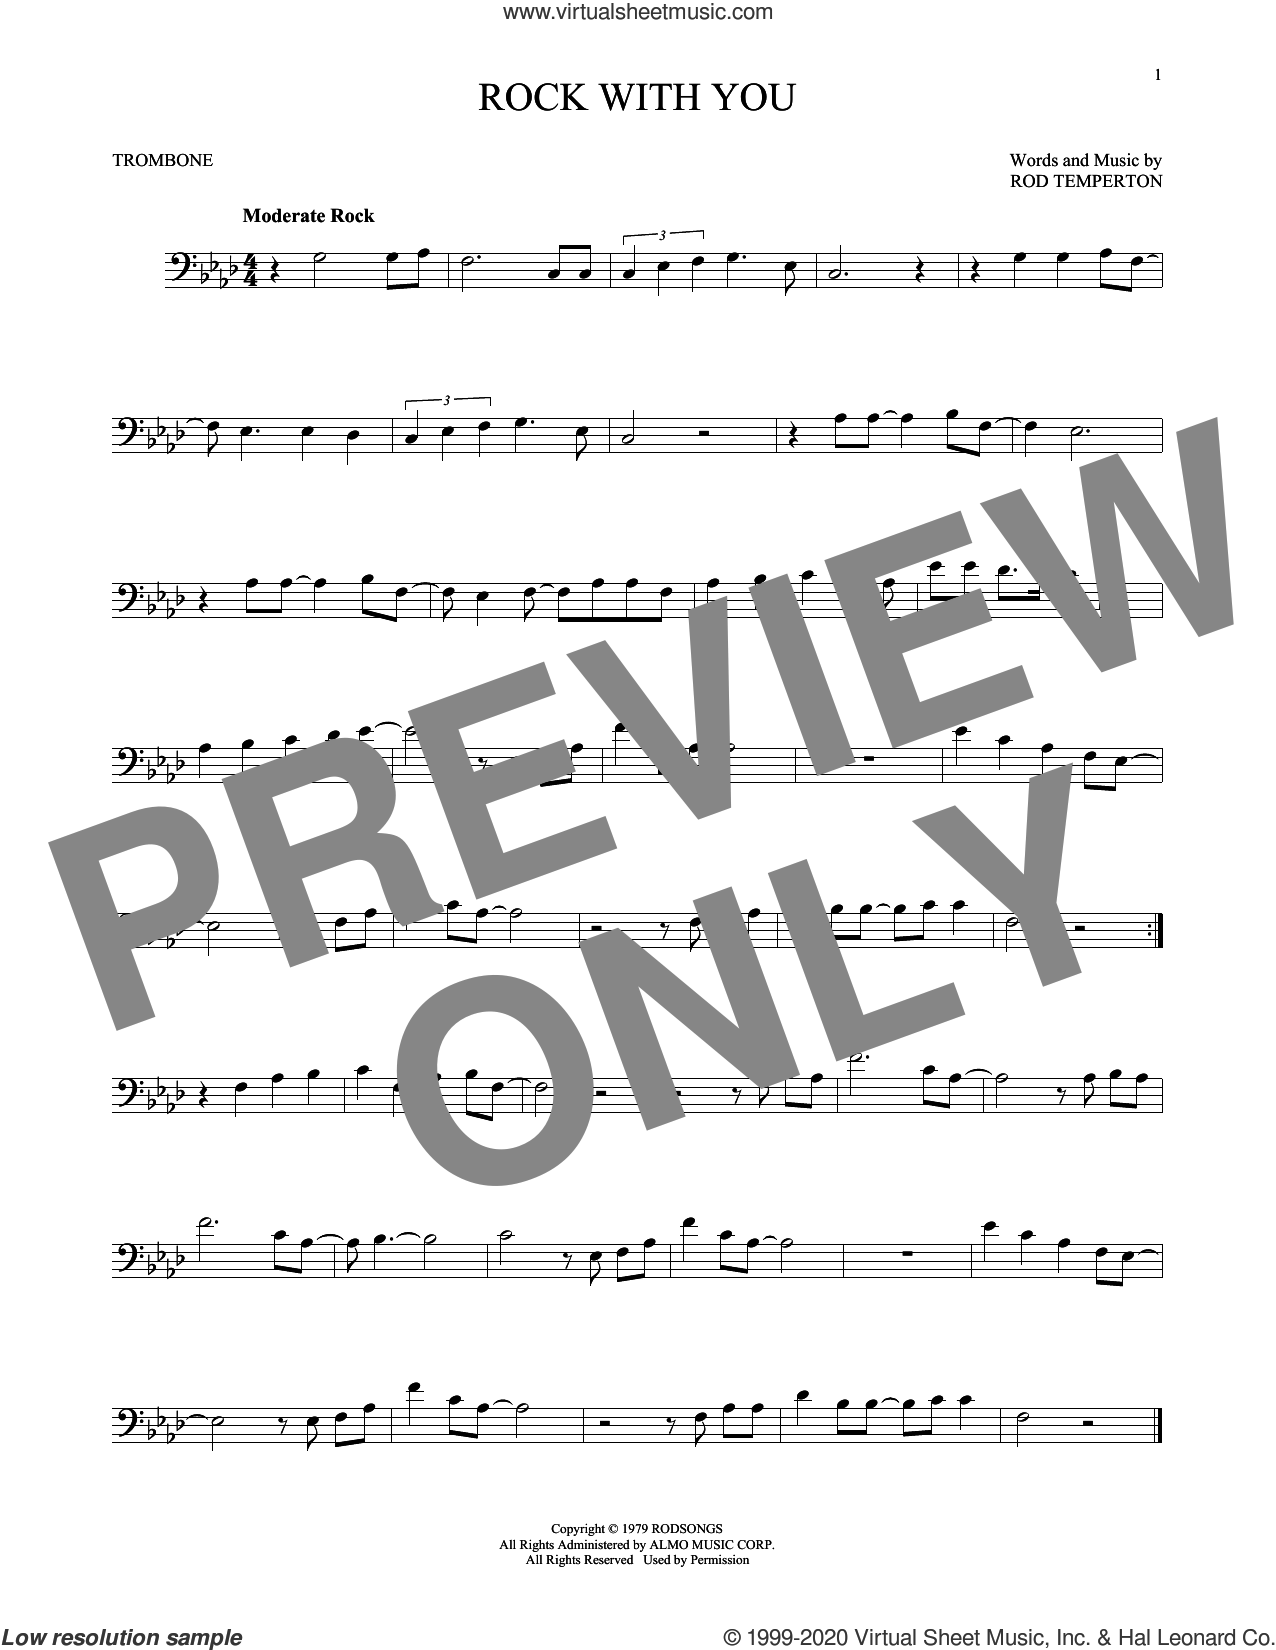 Rock With You sheet music for trombone solo by Michael Jackson and Rod Temperton, intermediate skill level